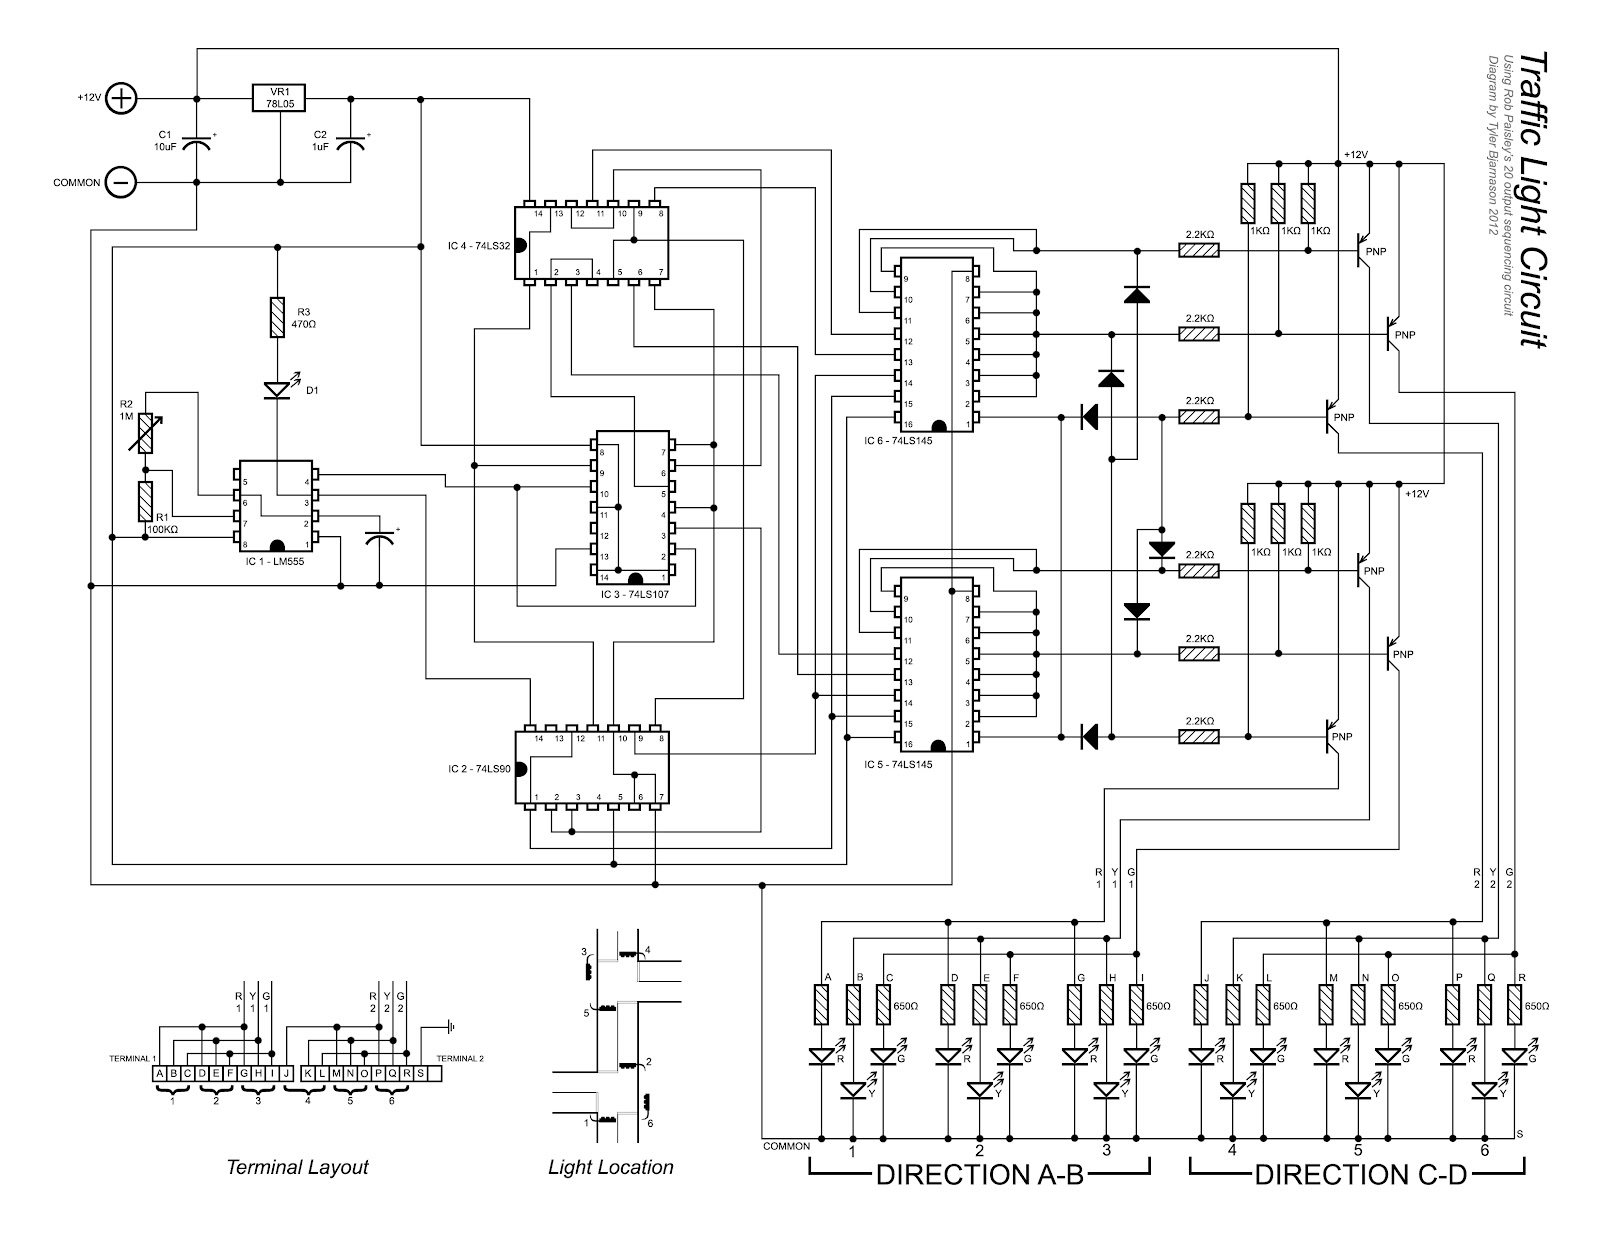 Wiring Diagram Of Switched Schematic Tys Model Railroad Diagrams For Traffic Light Controller Circuit